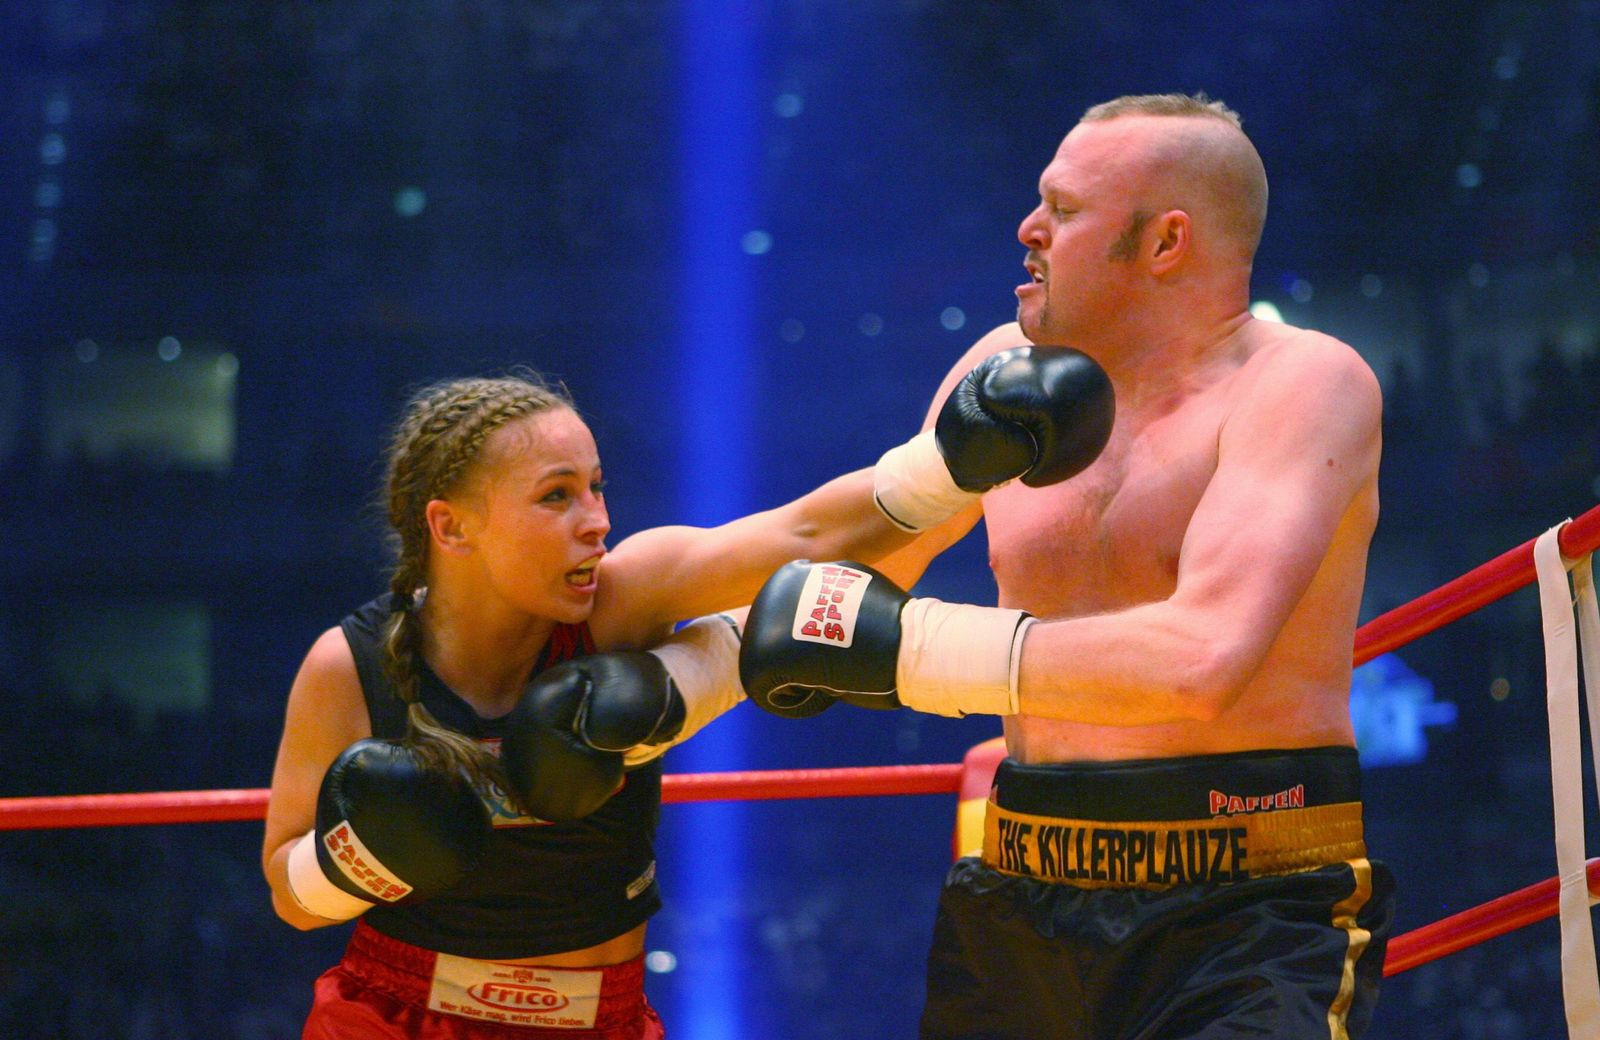 German WIBF flyweight World Champion Halmich punches entertainer Raab during their exhibition boxing fight in Cologne